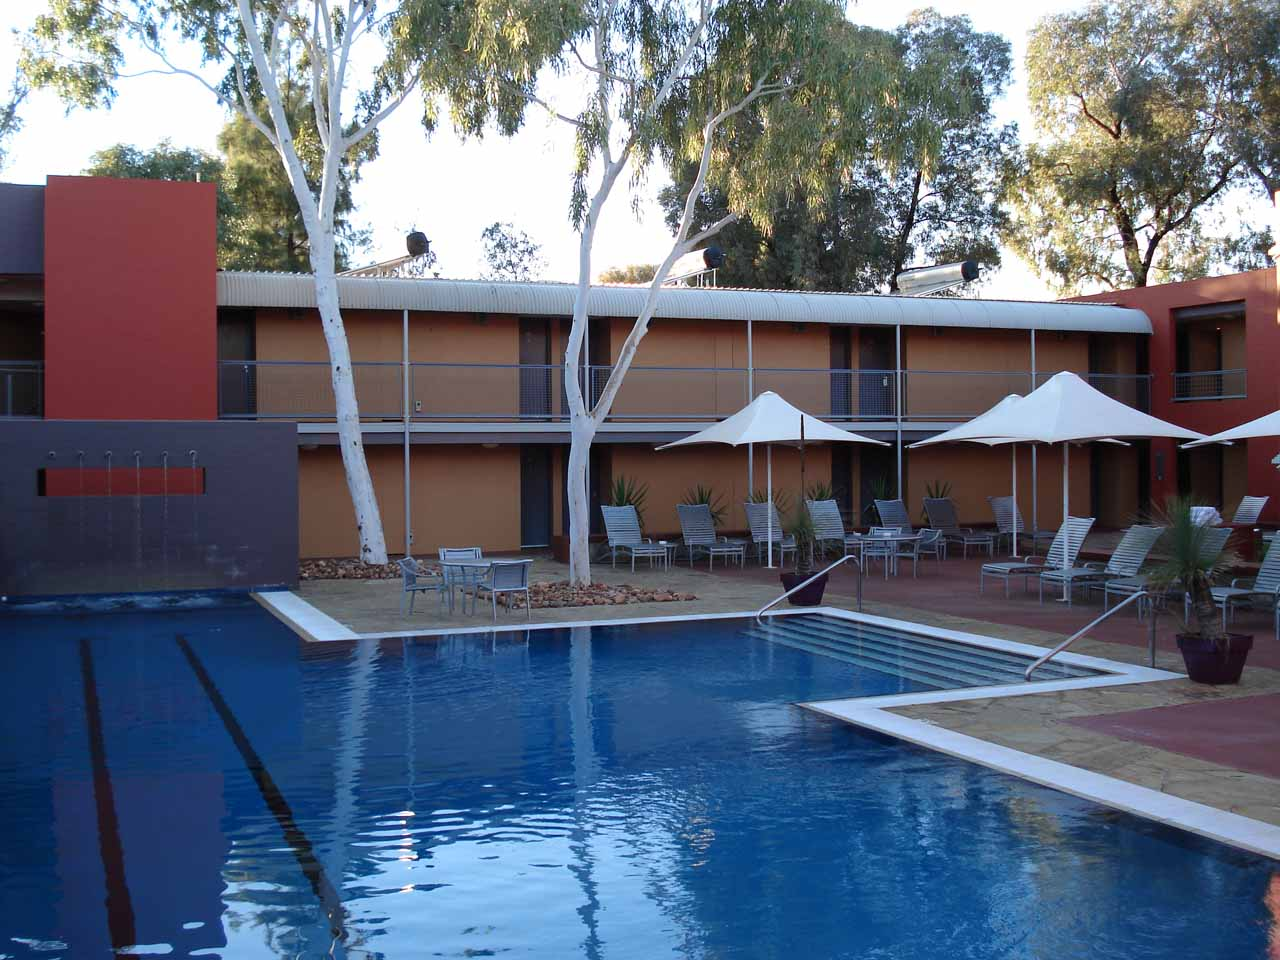 The swimming pool at the Lost Camel Hotel in Uluru